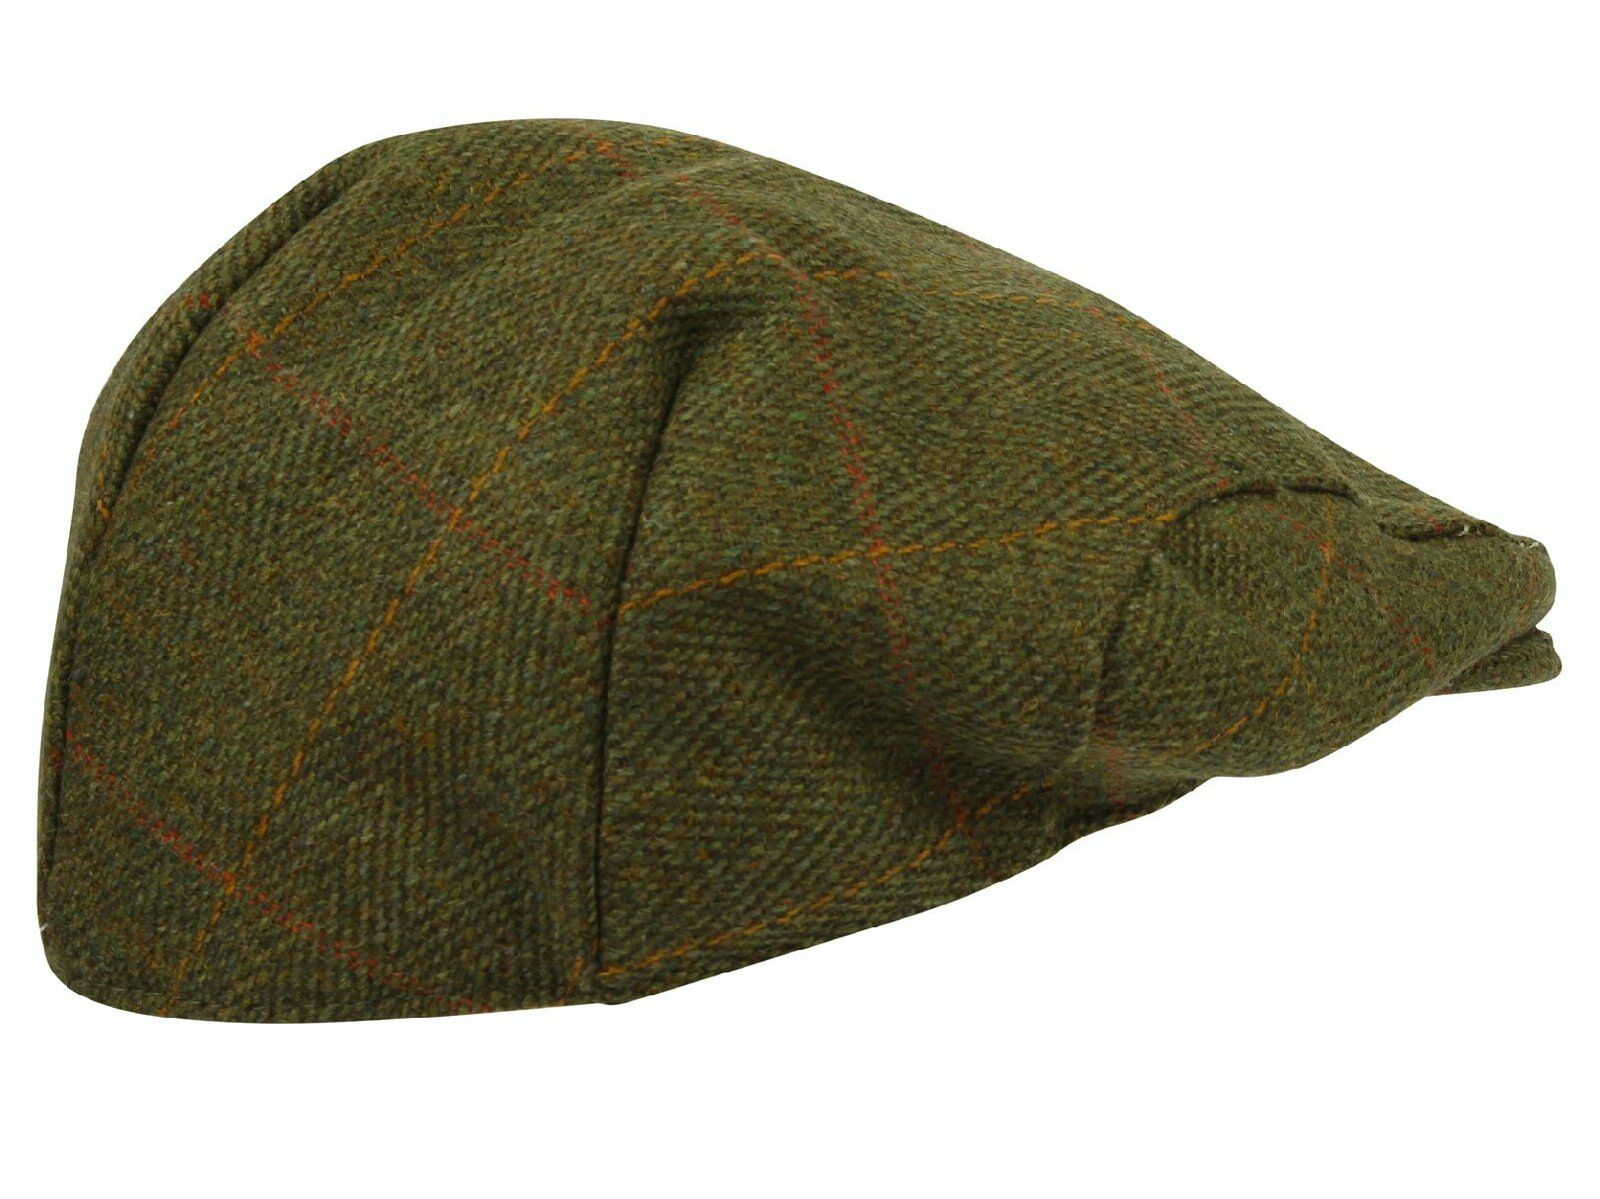 Tweed Flat Cap Wool Mens Derby Shooting Hat Teflon Coated Hunting ... db8eb04e690